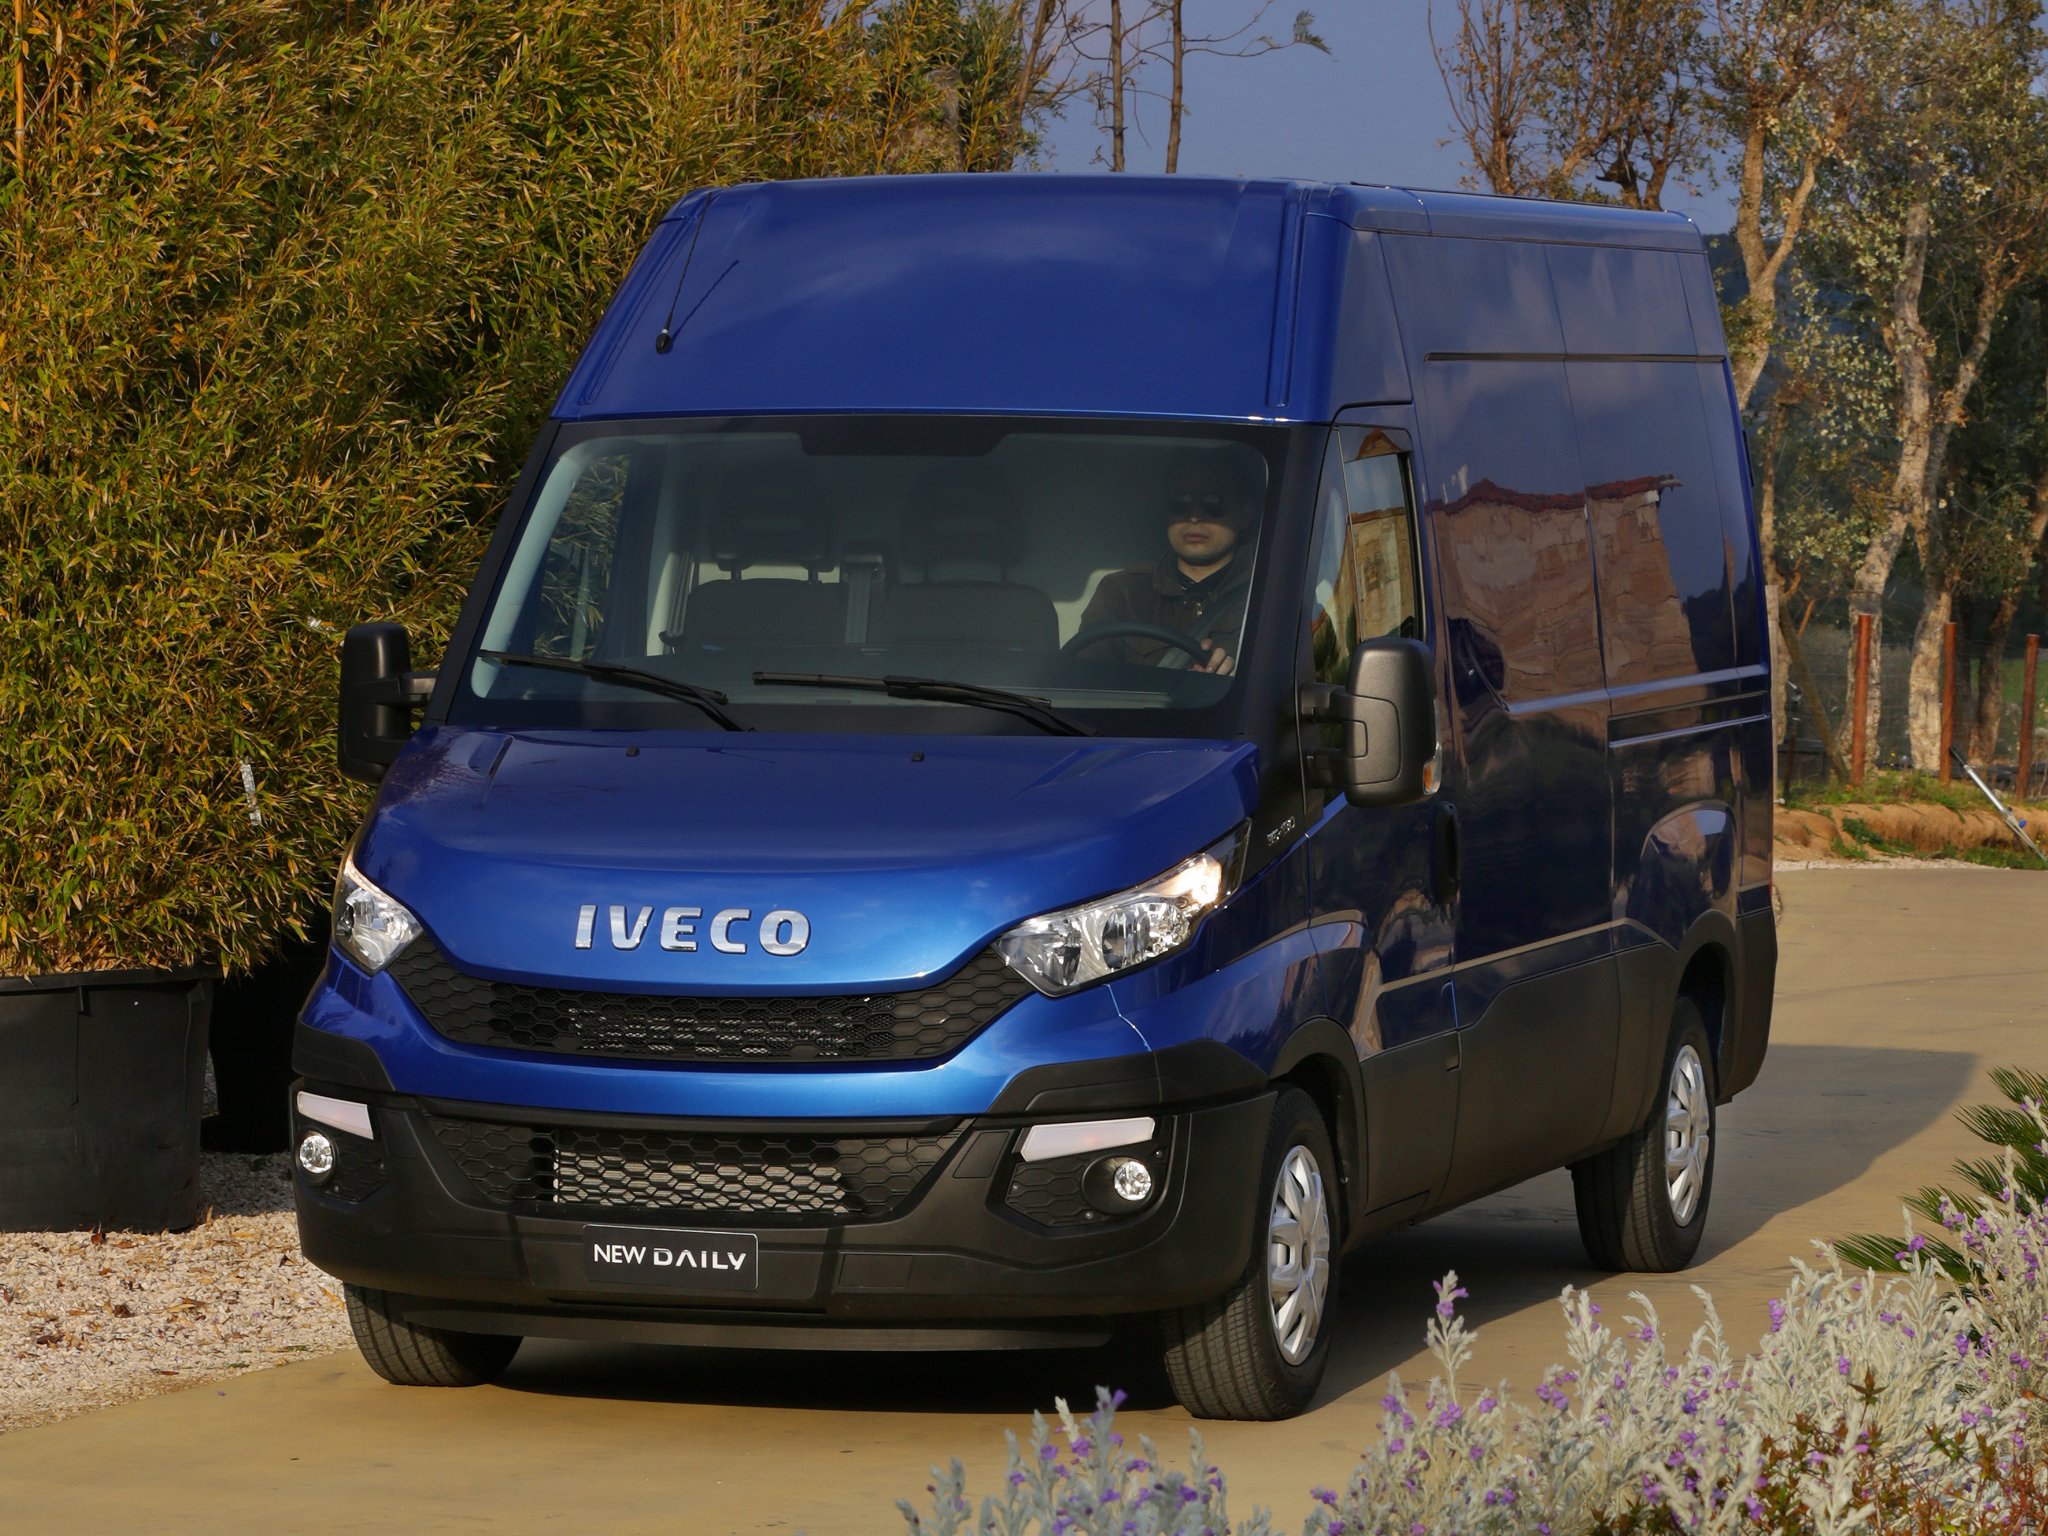 2014 - [Iveco] Daily - Page 3 Iveco-reveals-the-new-daily-for-2014-say-it-s-80-redesigned-photo-gallery_34